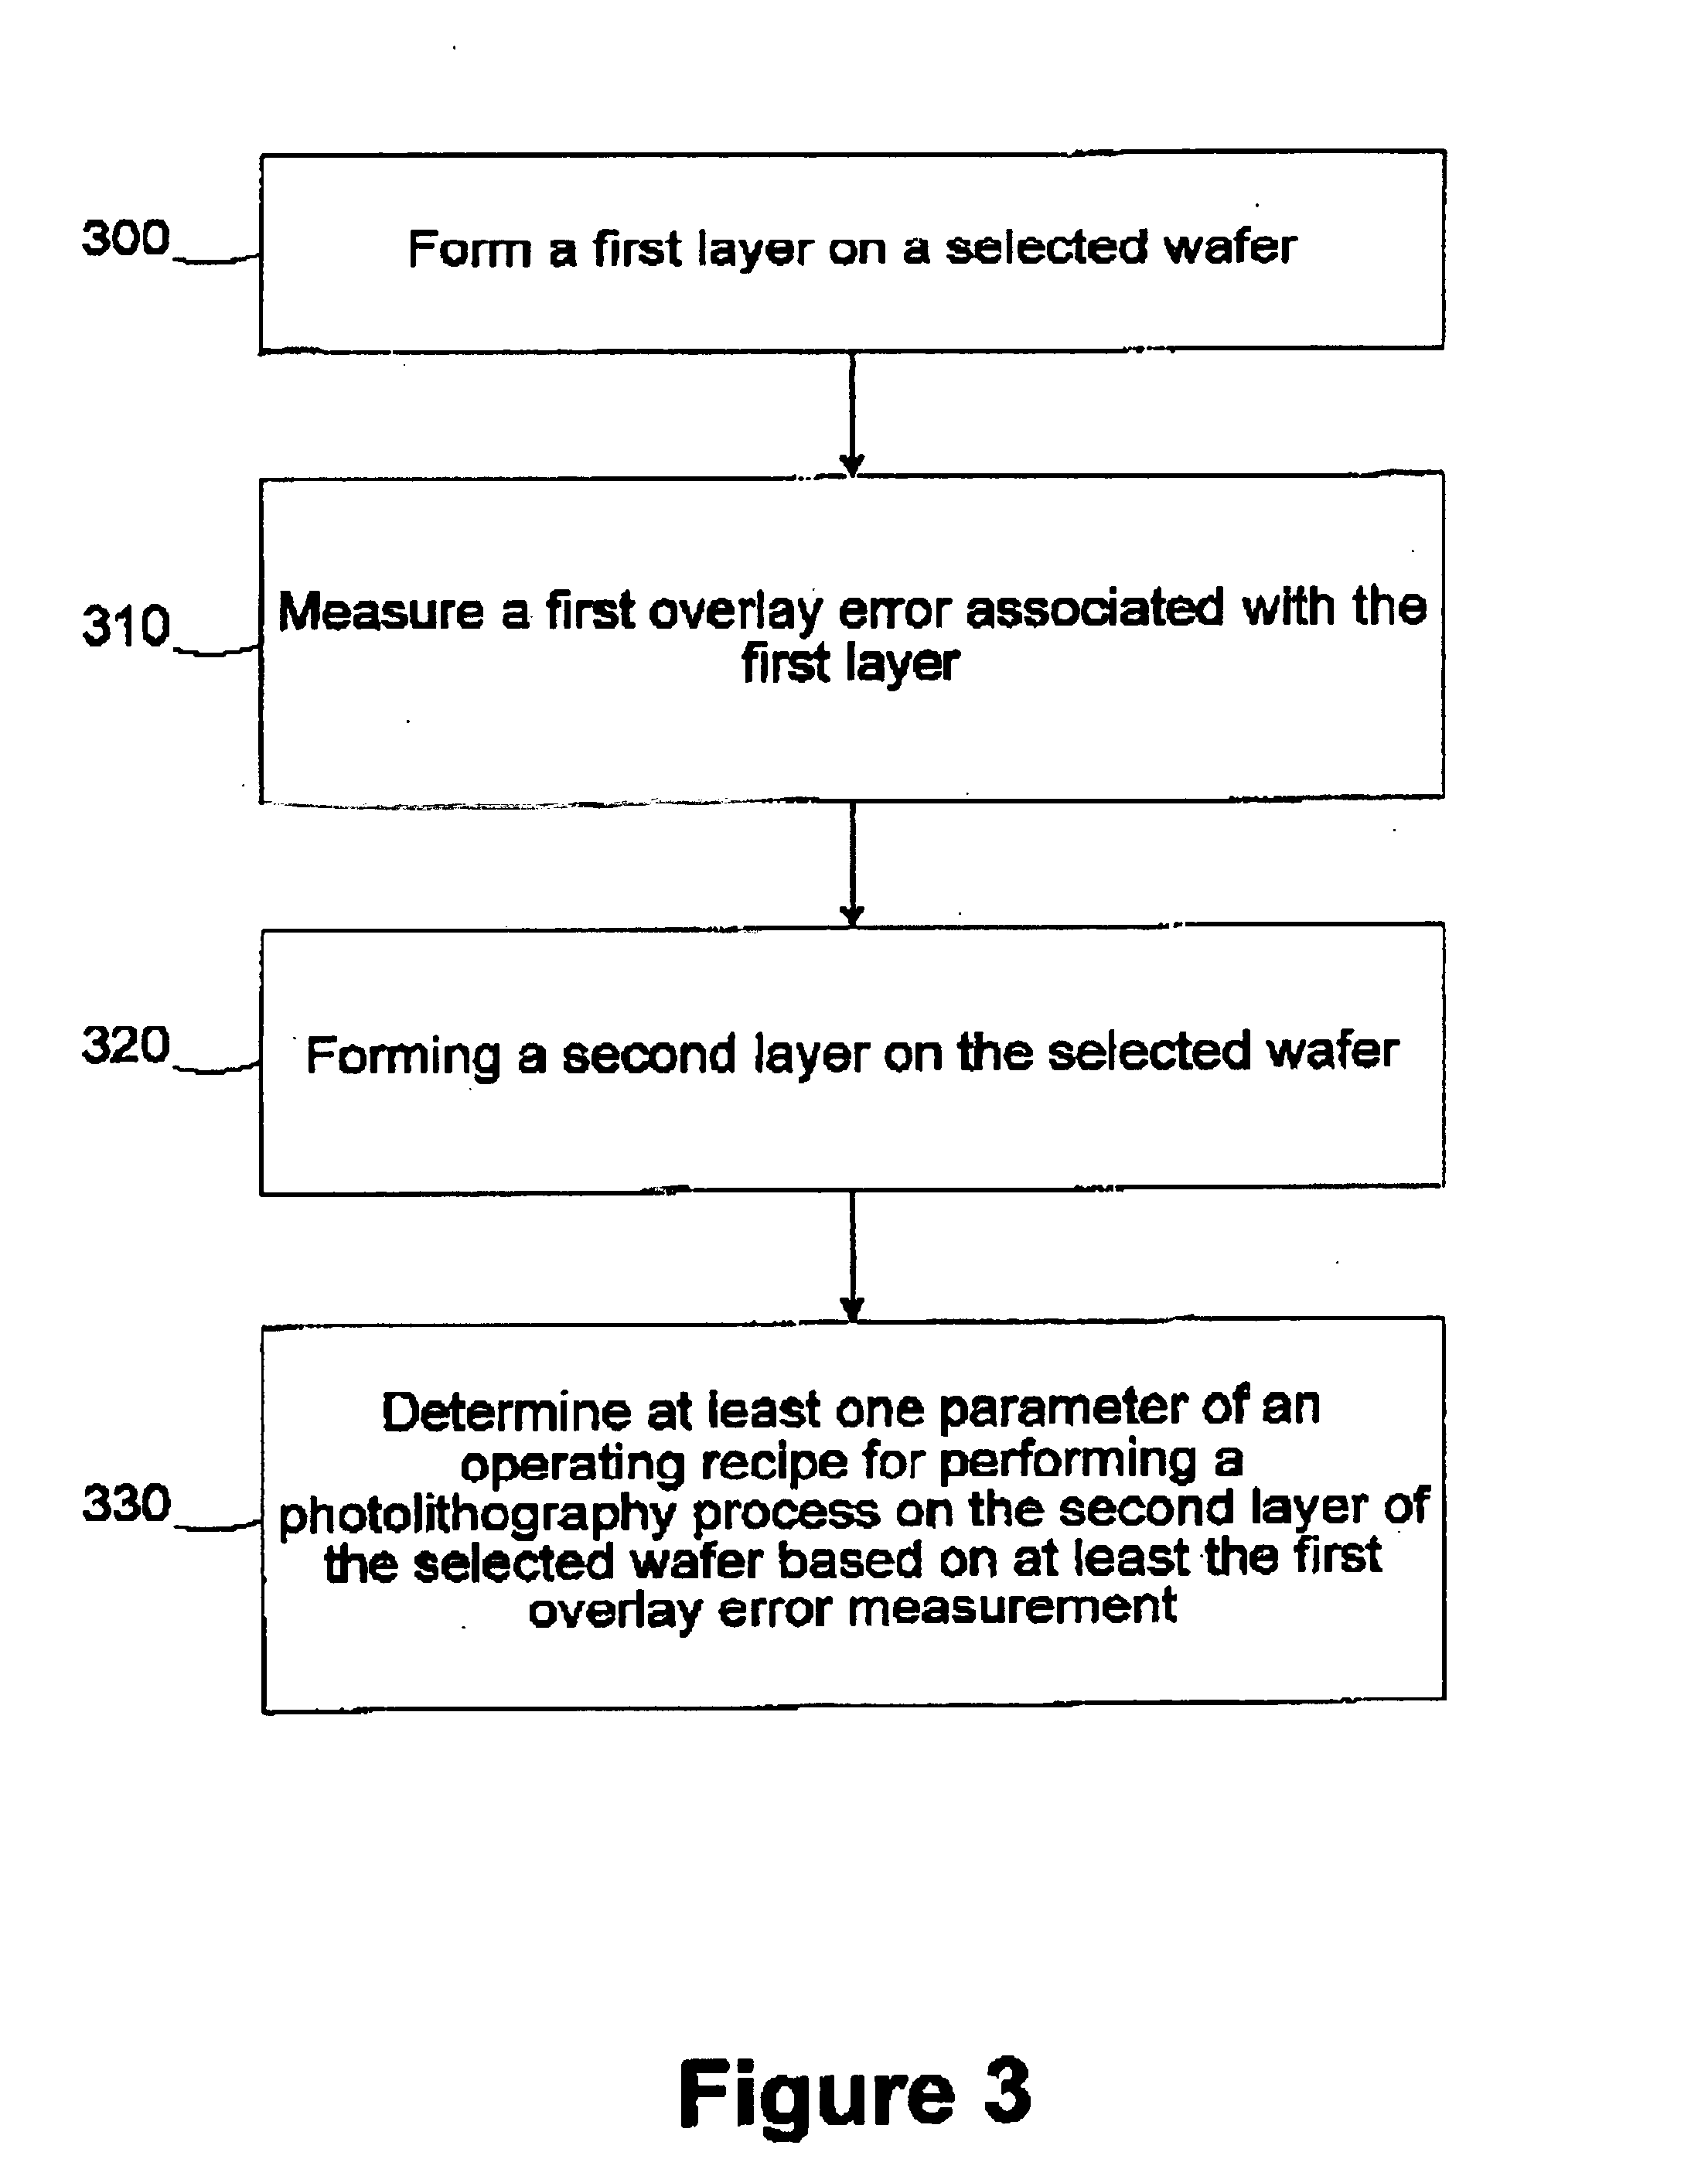 Brevet Us6737208 Method And Apparatus For Controlling Photolithography Patent Drawing